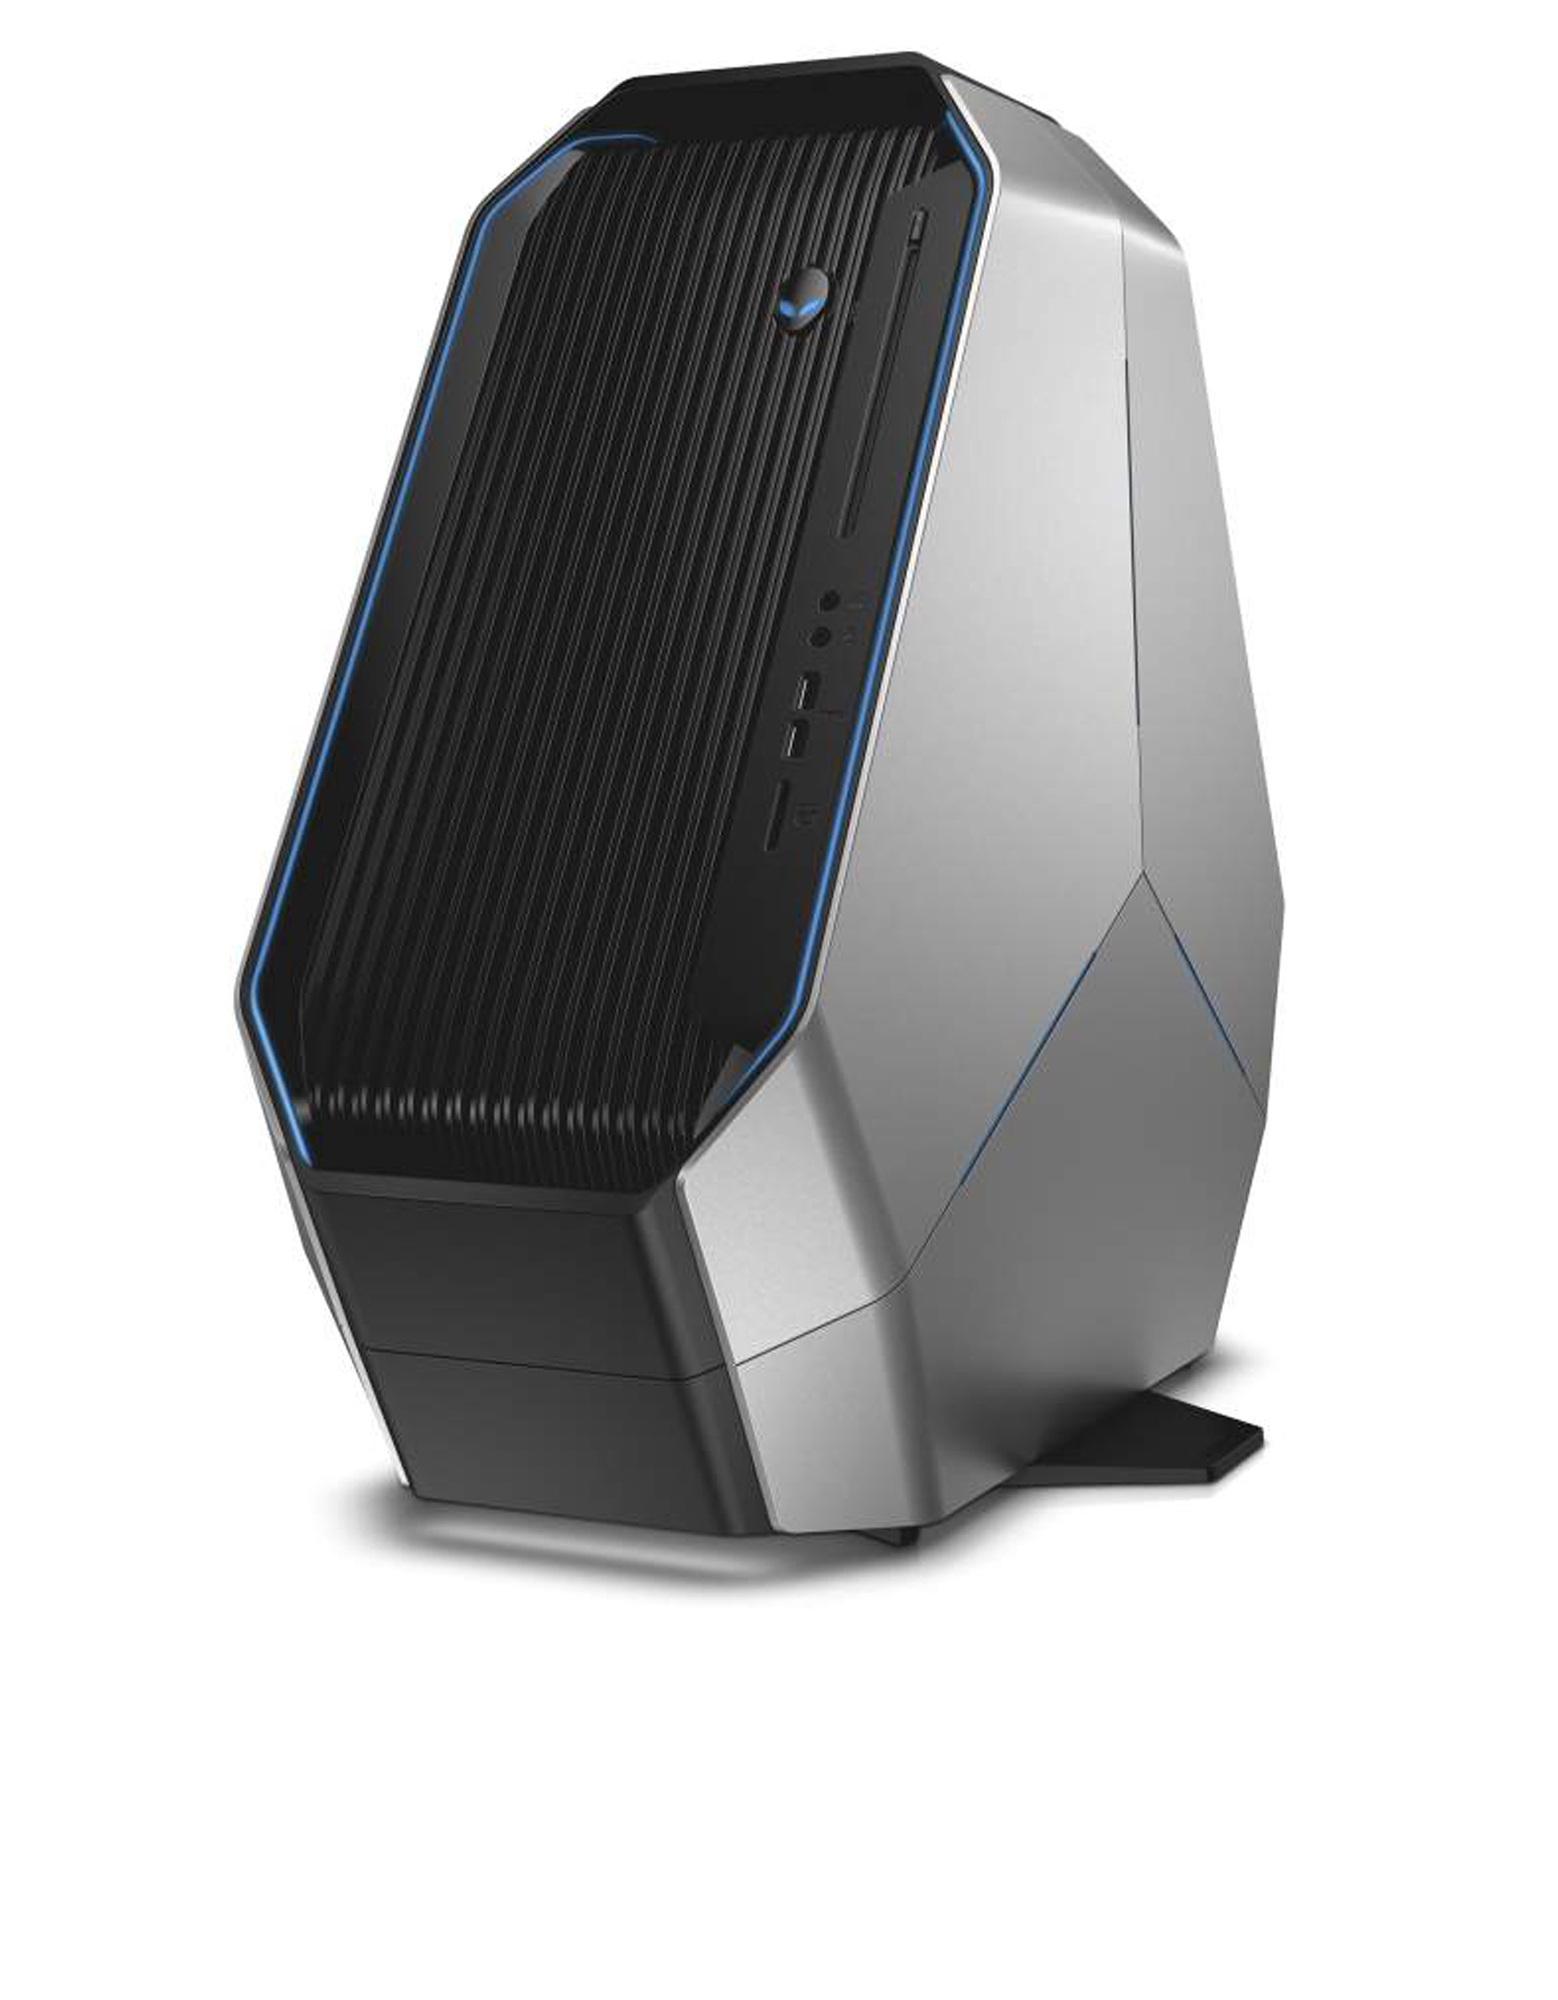 Alienware Area-51 Intel Core i7-5960X 3.0GHz/32GB/4TB+512GB/NVIDIA GeForce GTX 980/Windows 10